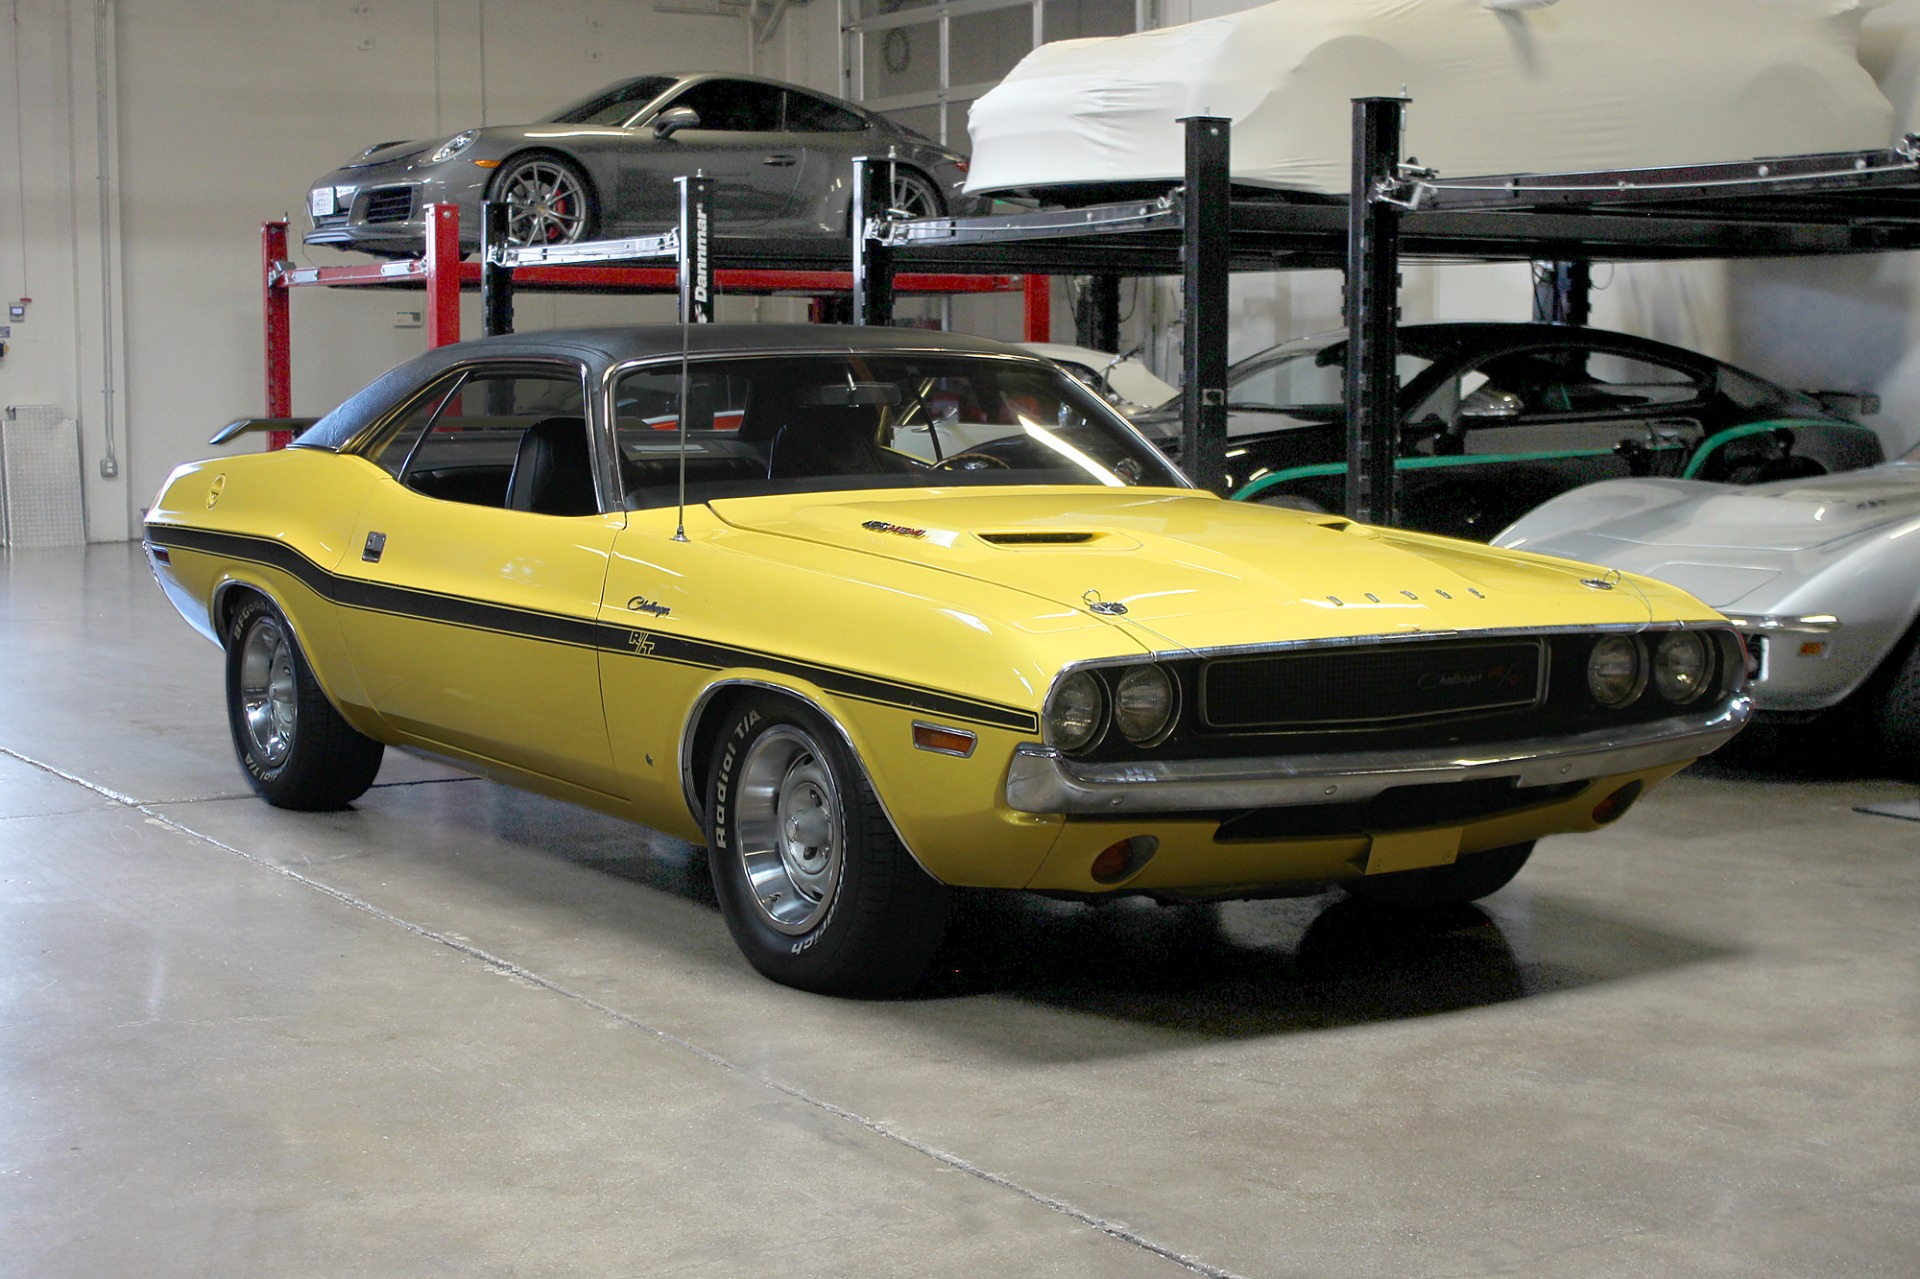 Used 1970 Dodge Challenger R/T 426 HEMI for sale $149,995 at San Francisco Sports Cars in San Carlos CA 94070 1